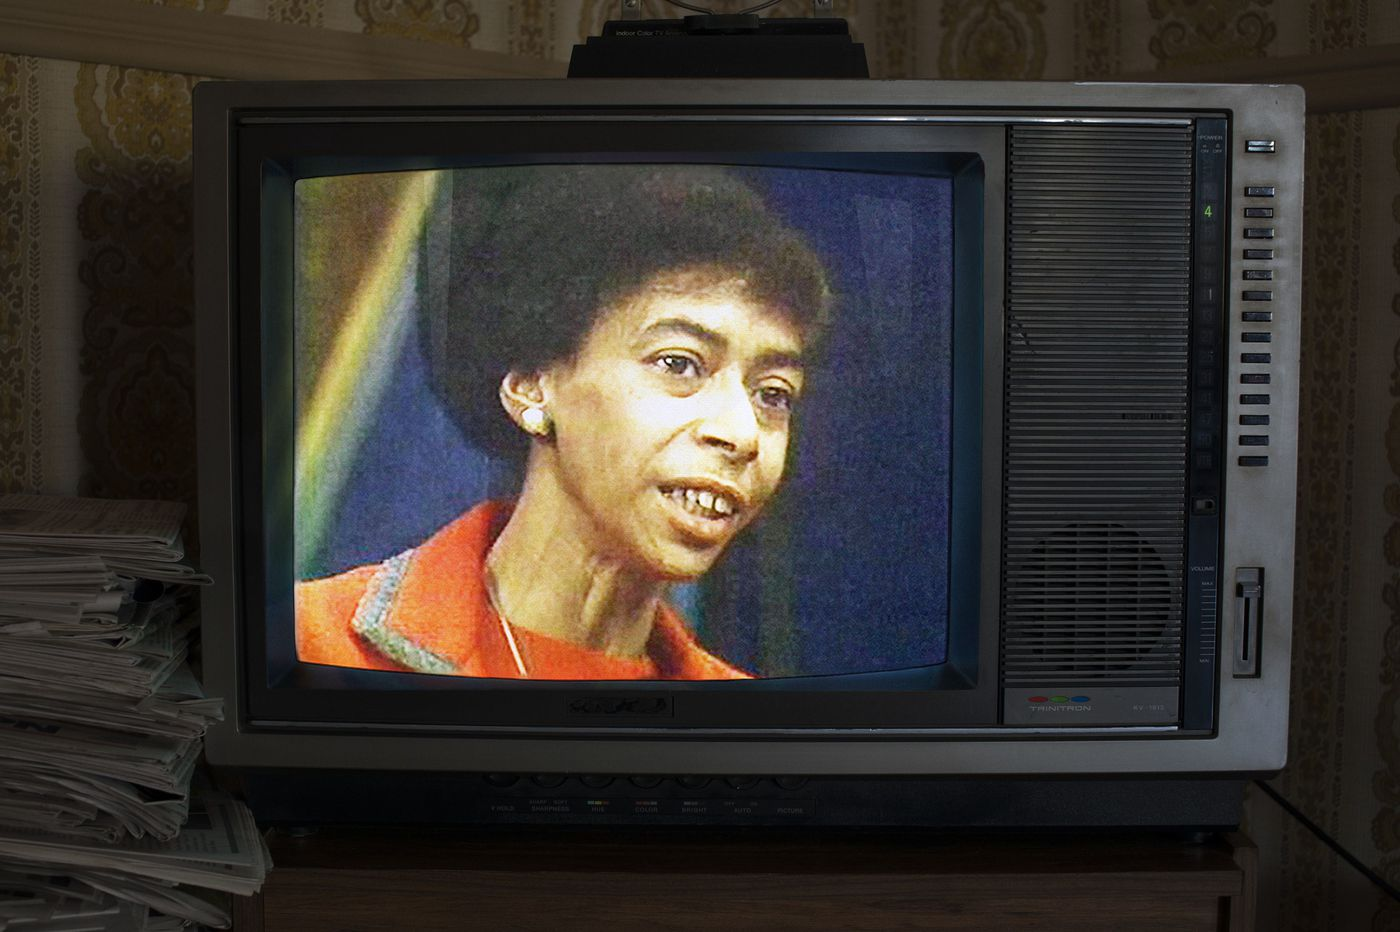 This Philadelphia woman recorded three decades of television on 70,000 VHS tapes